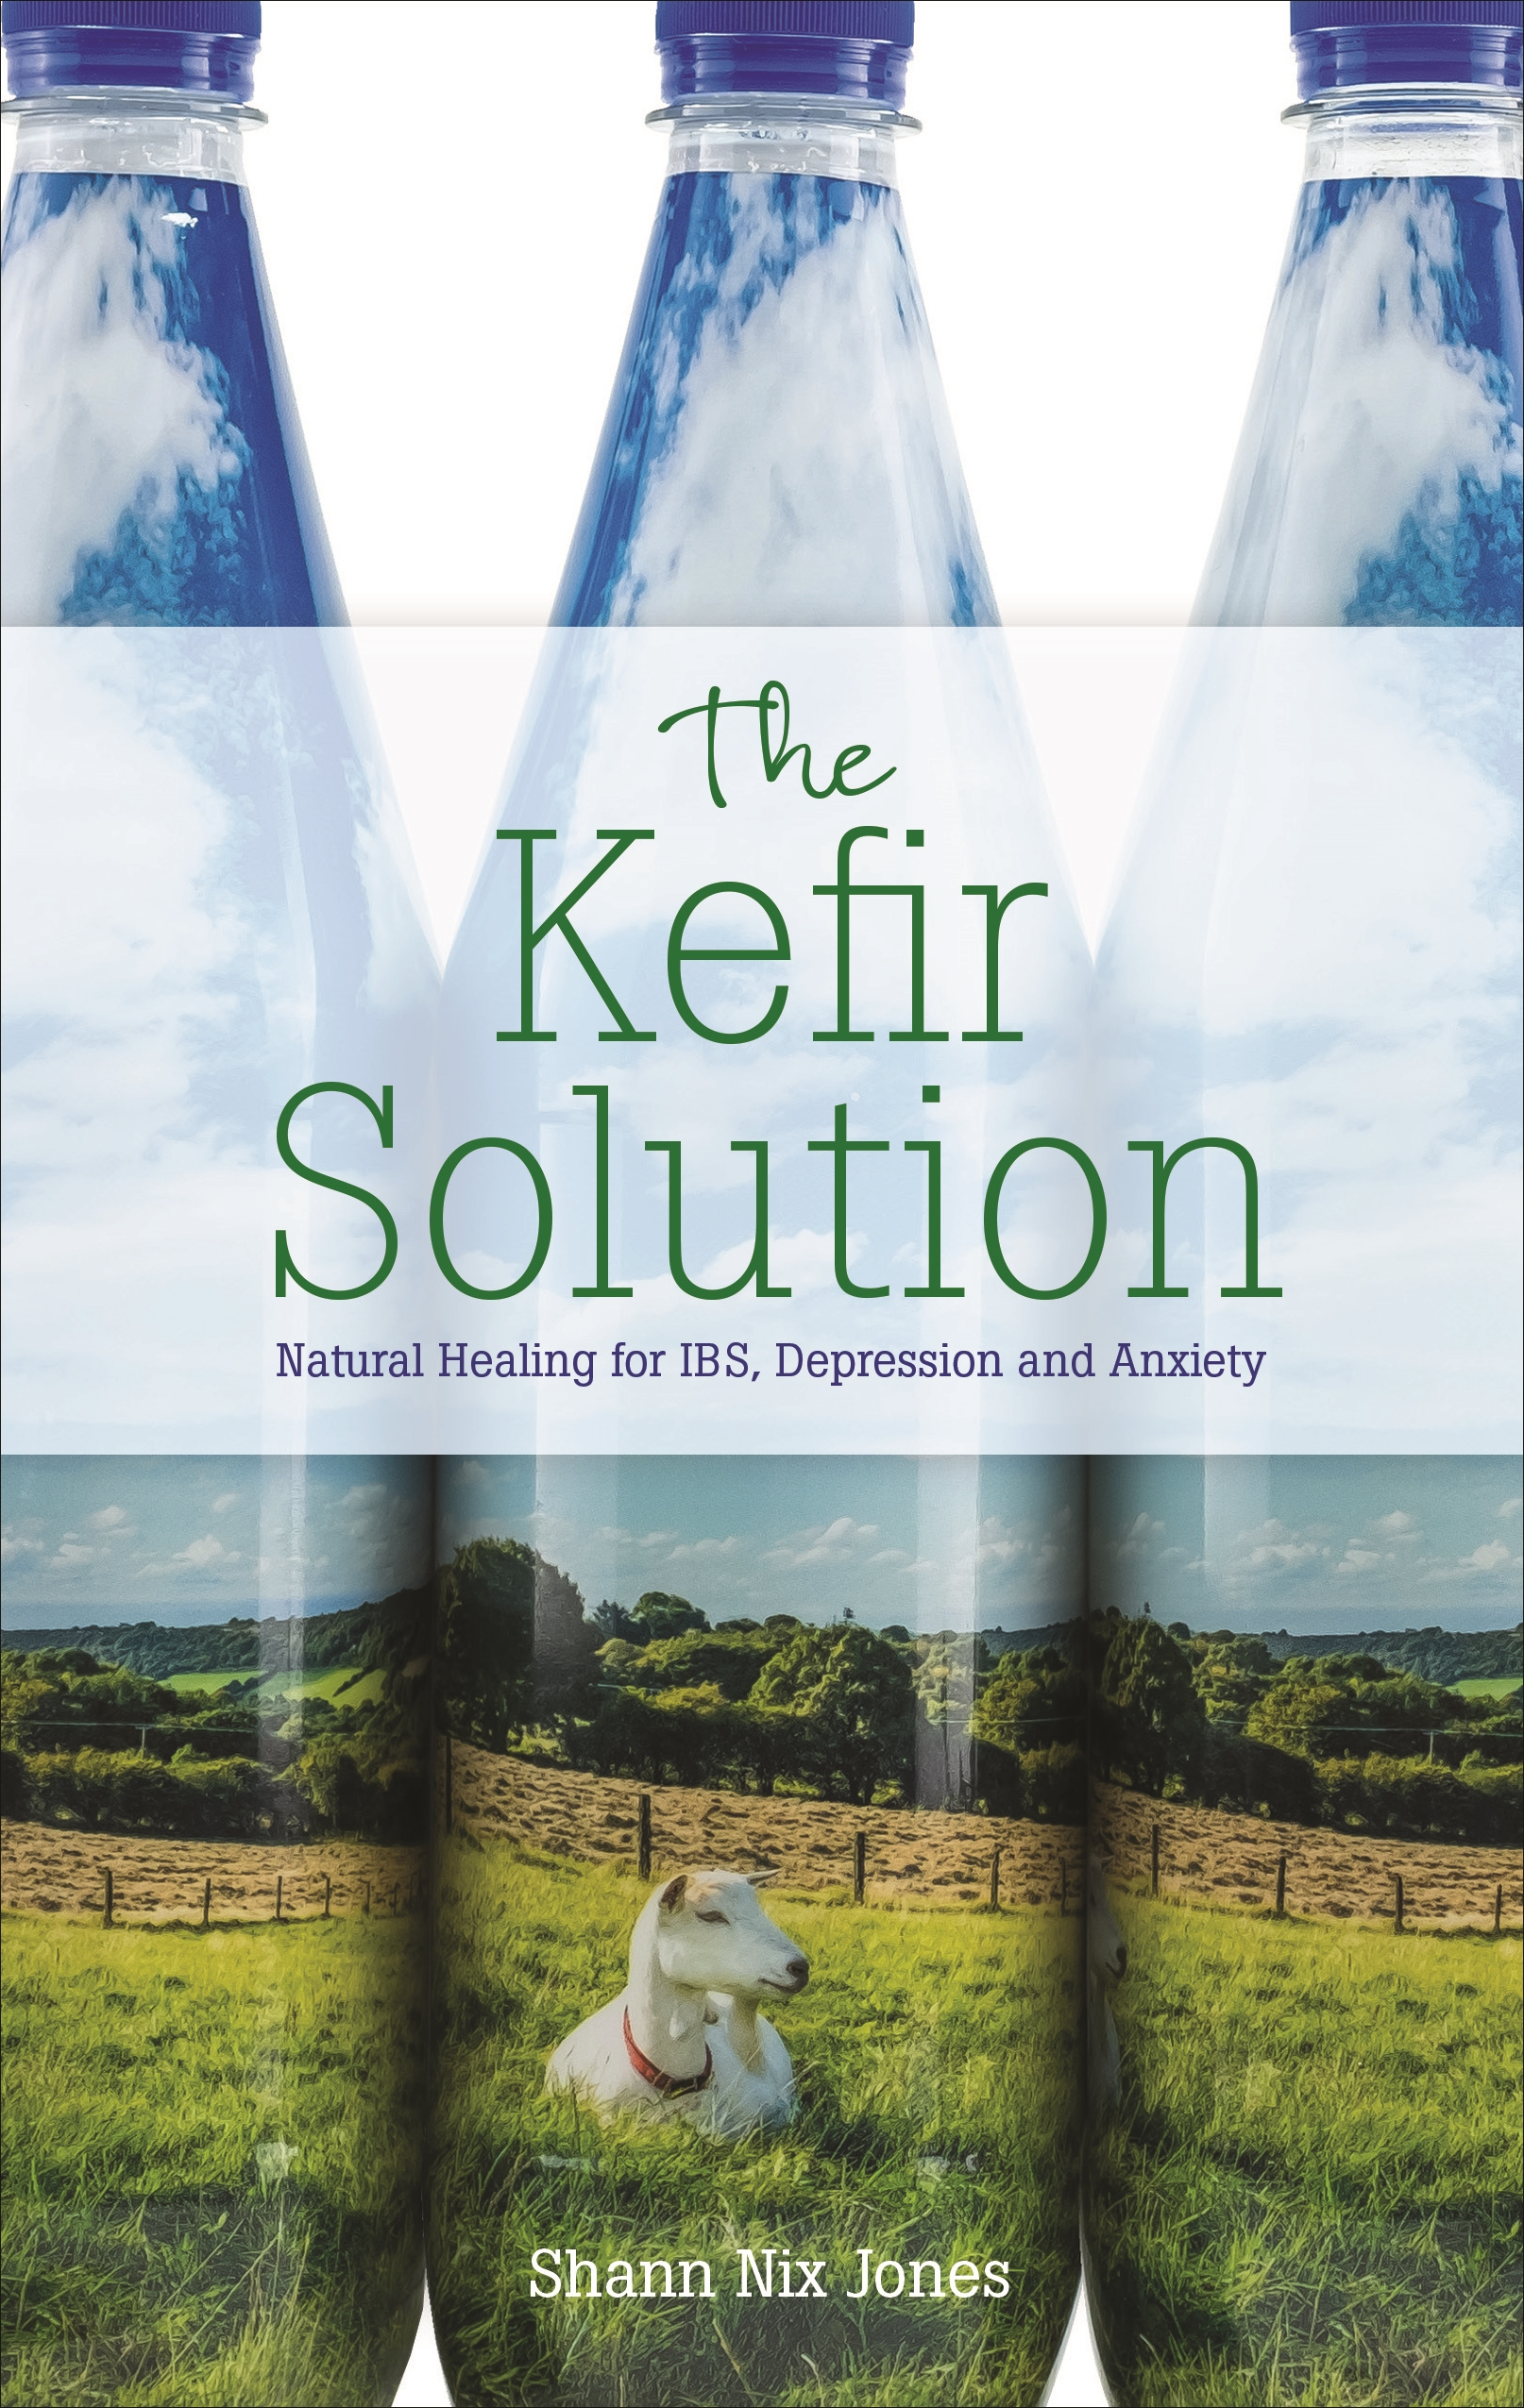 Kefir IBS depression anxiety kefir solution Shann Nix Jones Healthista